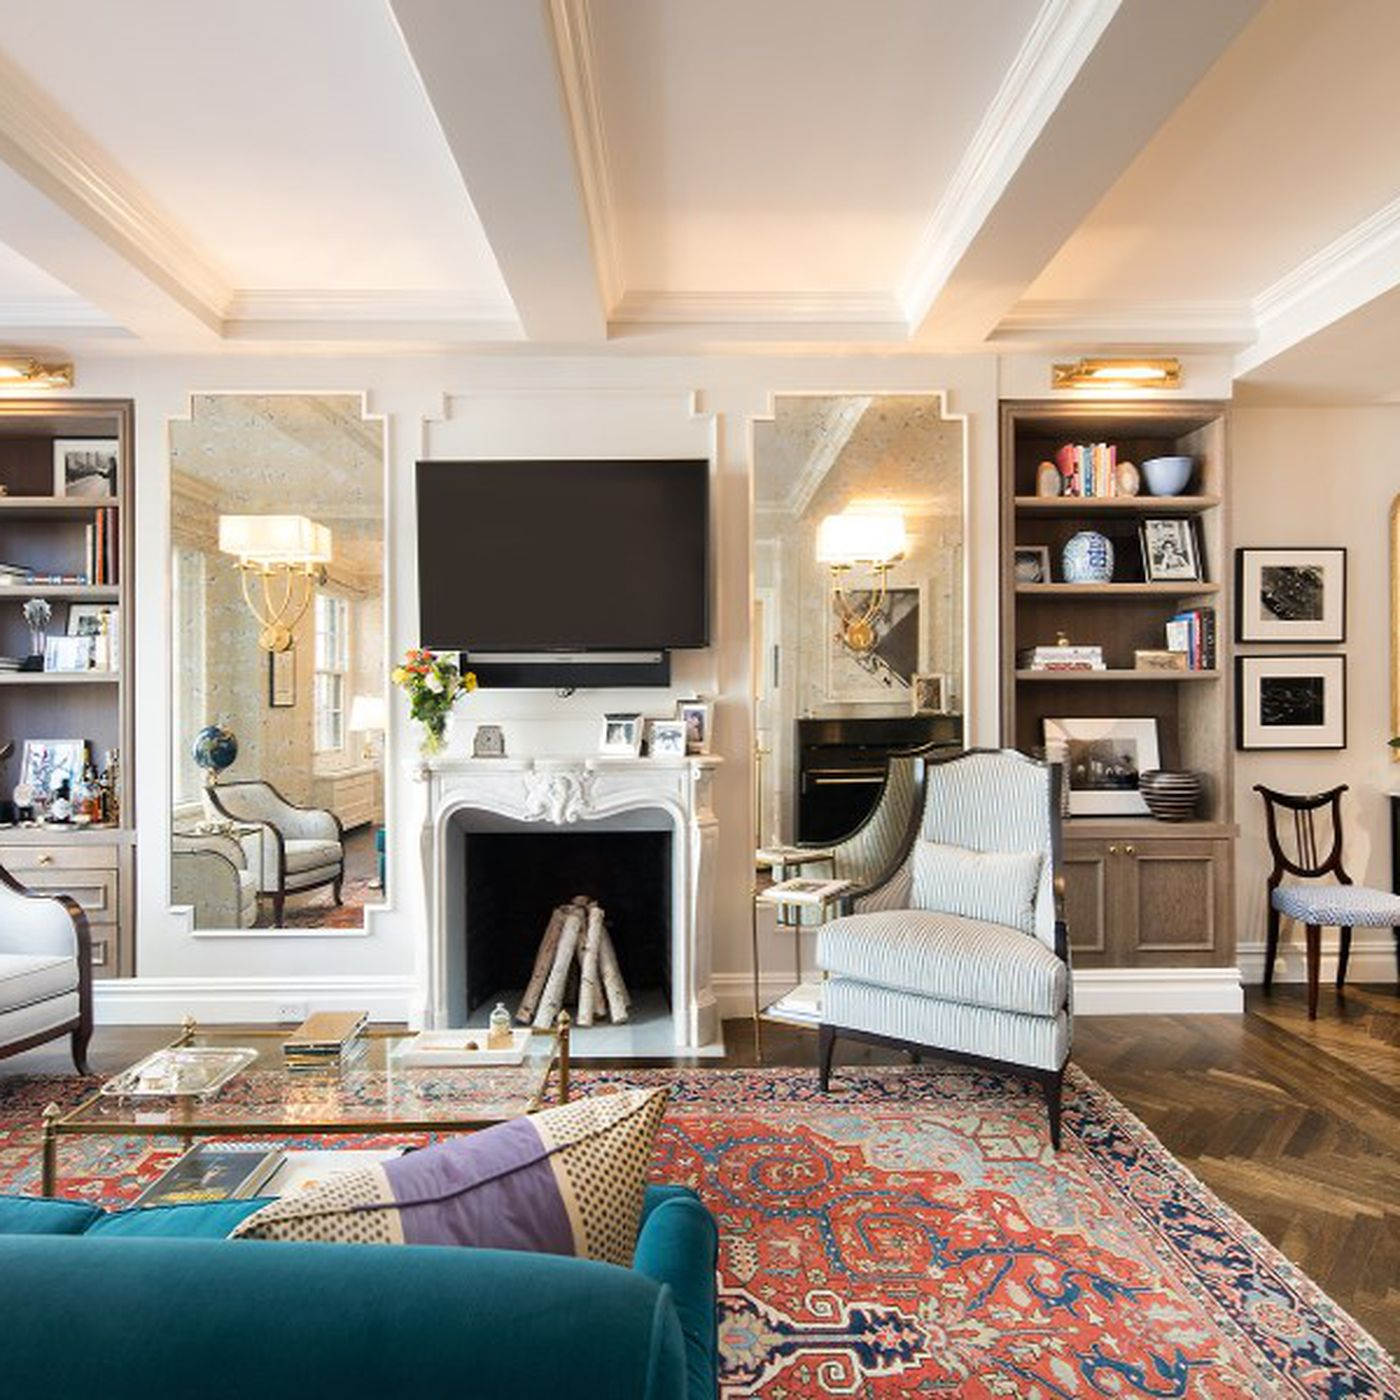 Emmy Rossum offloads her chic Sutton Place pied  terre Curbed NY